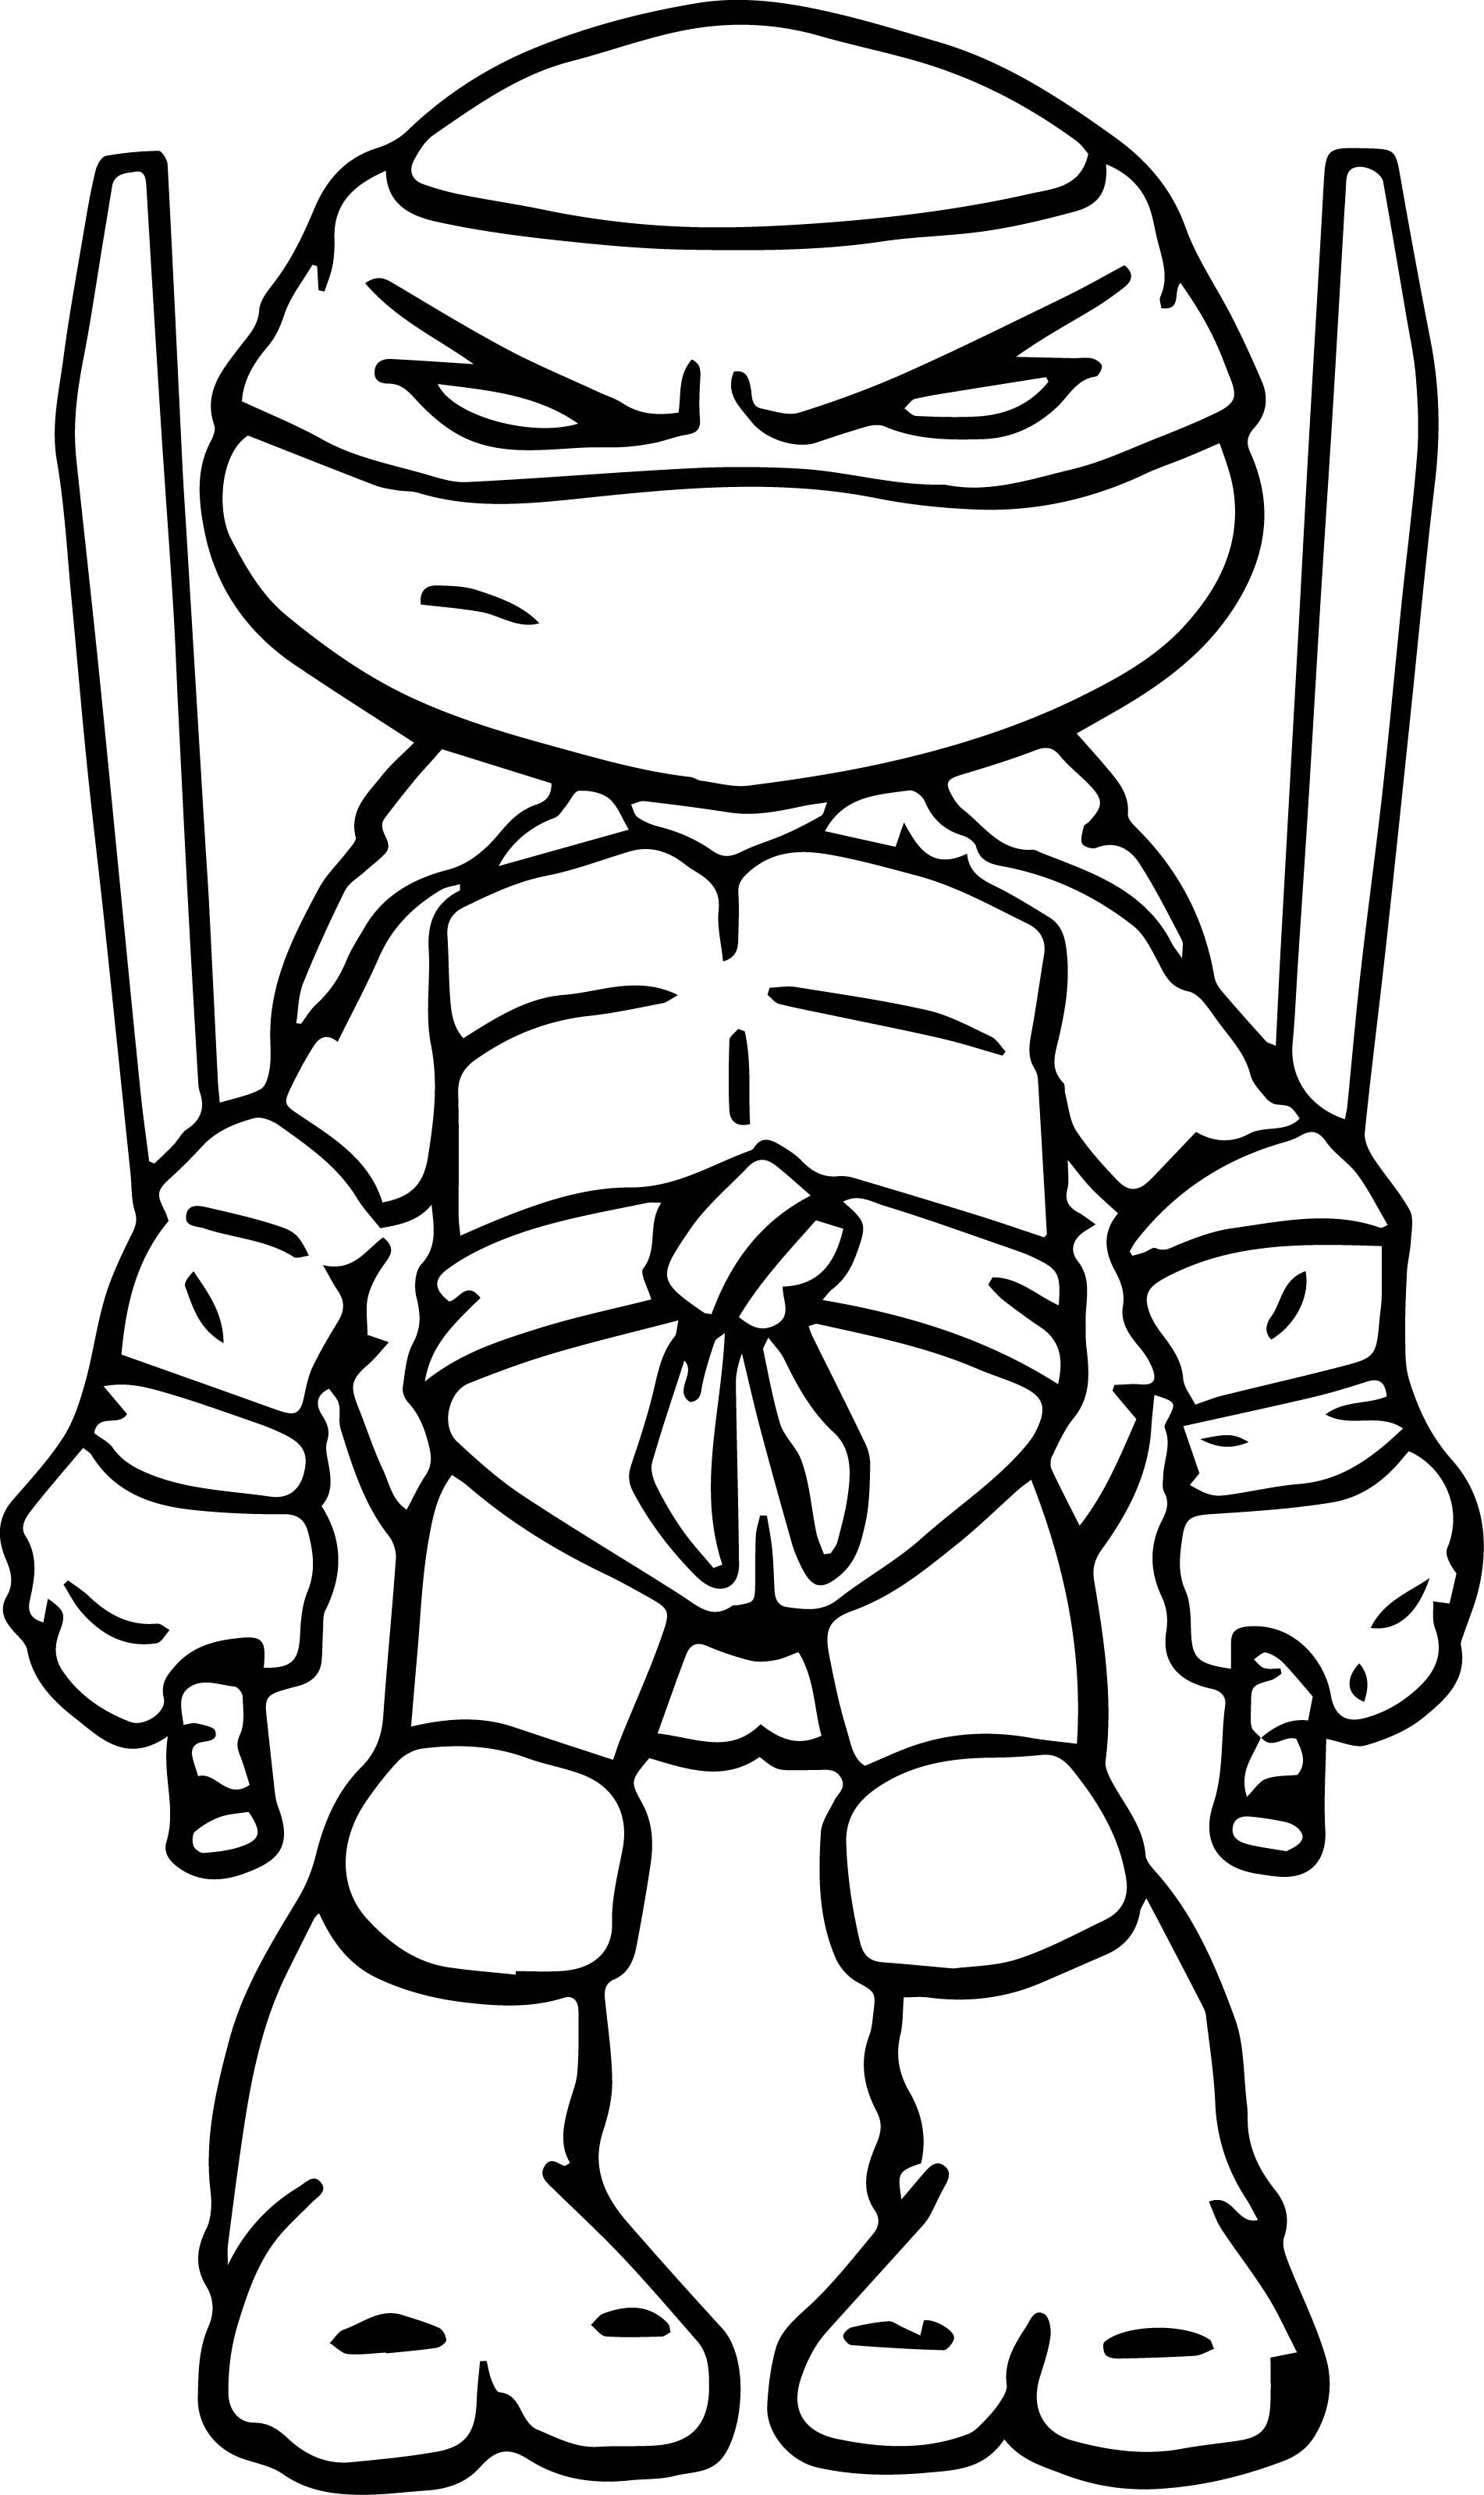 online coloring pages ninja turtles - photo#15